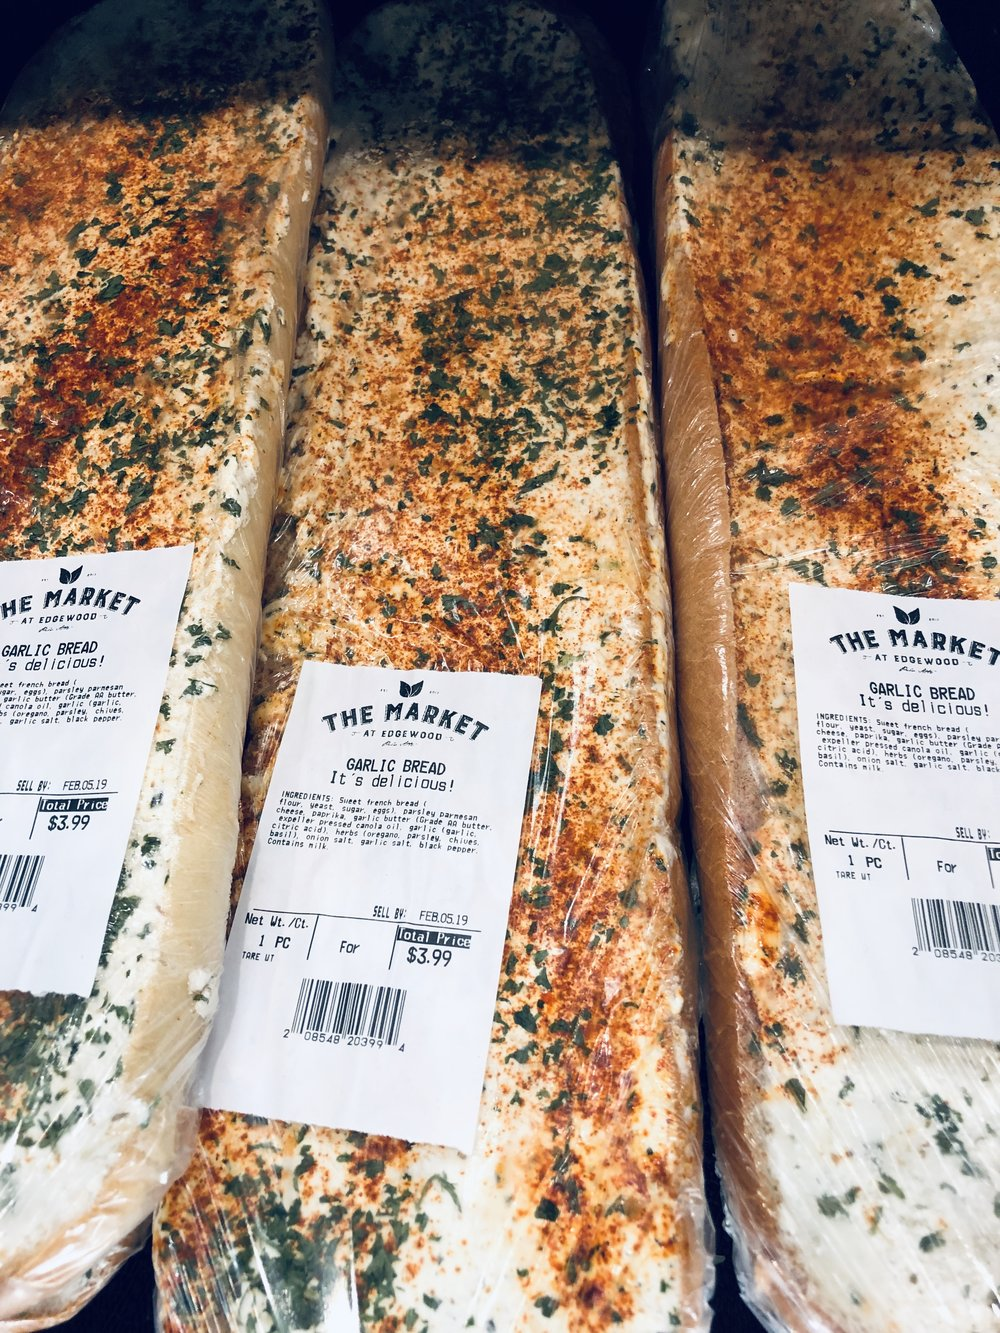 garlic bread $3.59 ea. (reg. $3.99) -